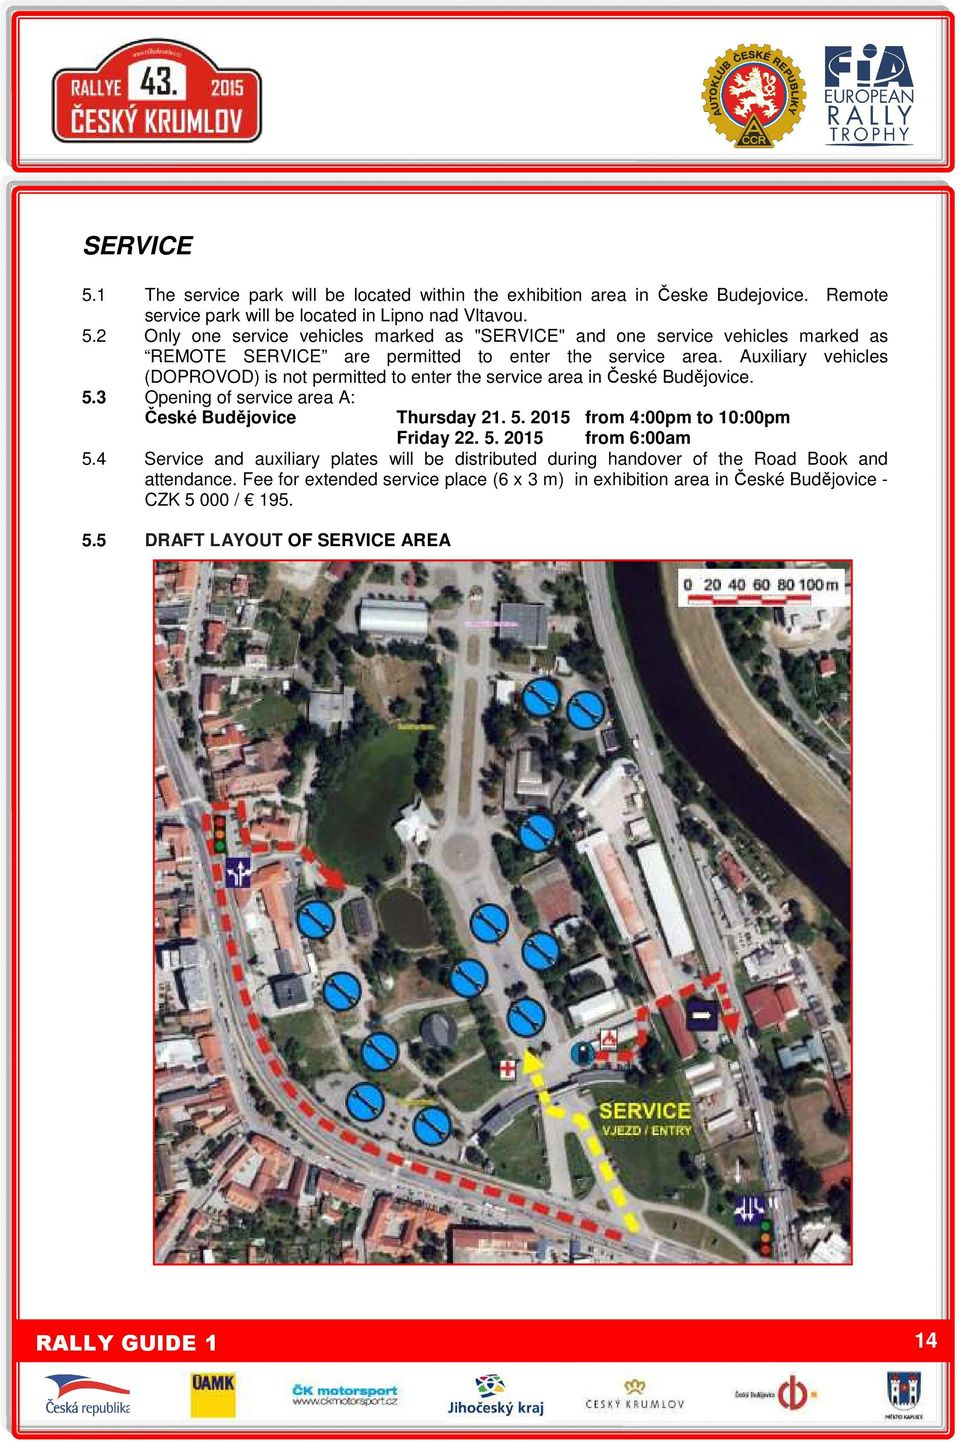 5. 2015 from 6:00am 5.4 Service and auxiliary plates will be distributed during handover of the Road Book and attendance.